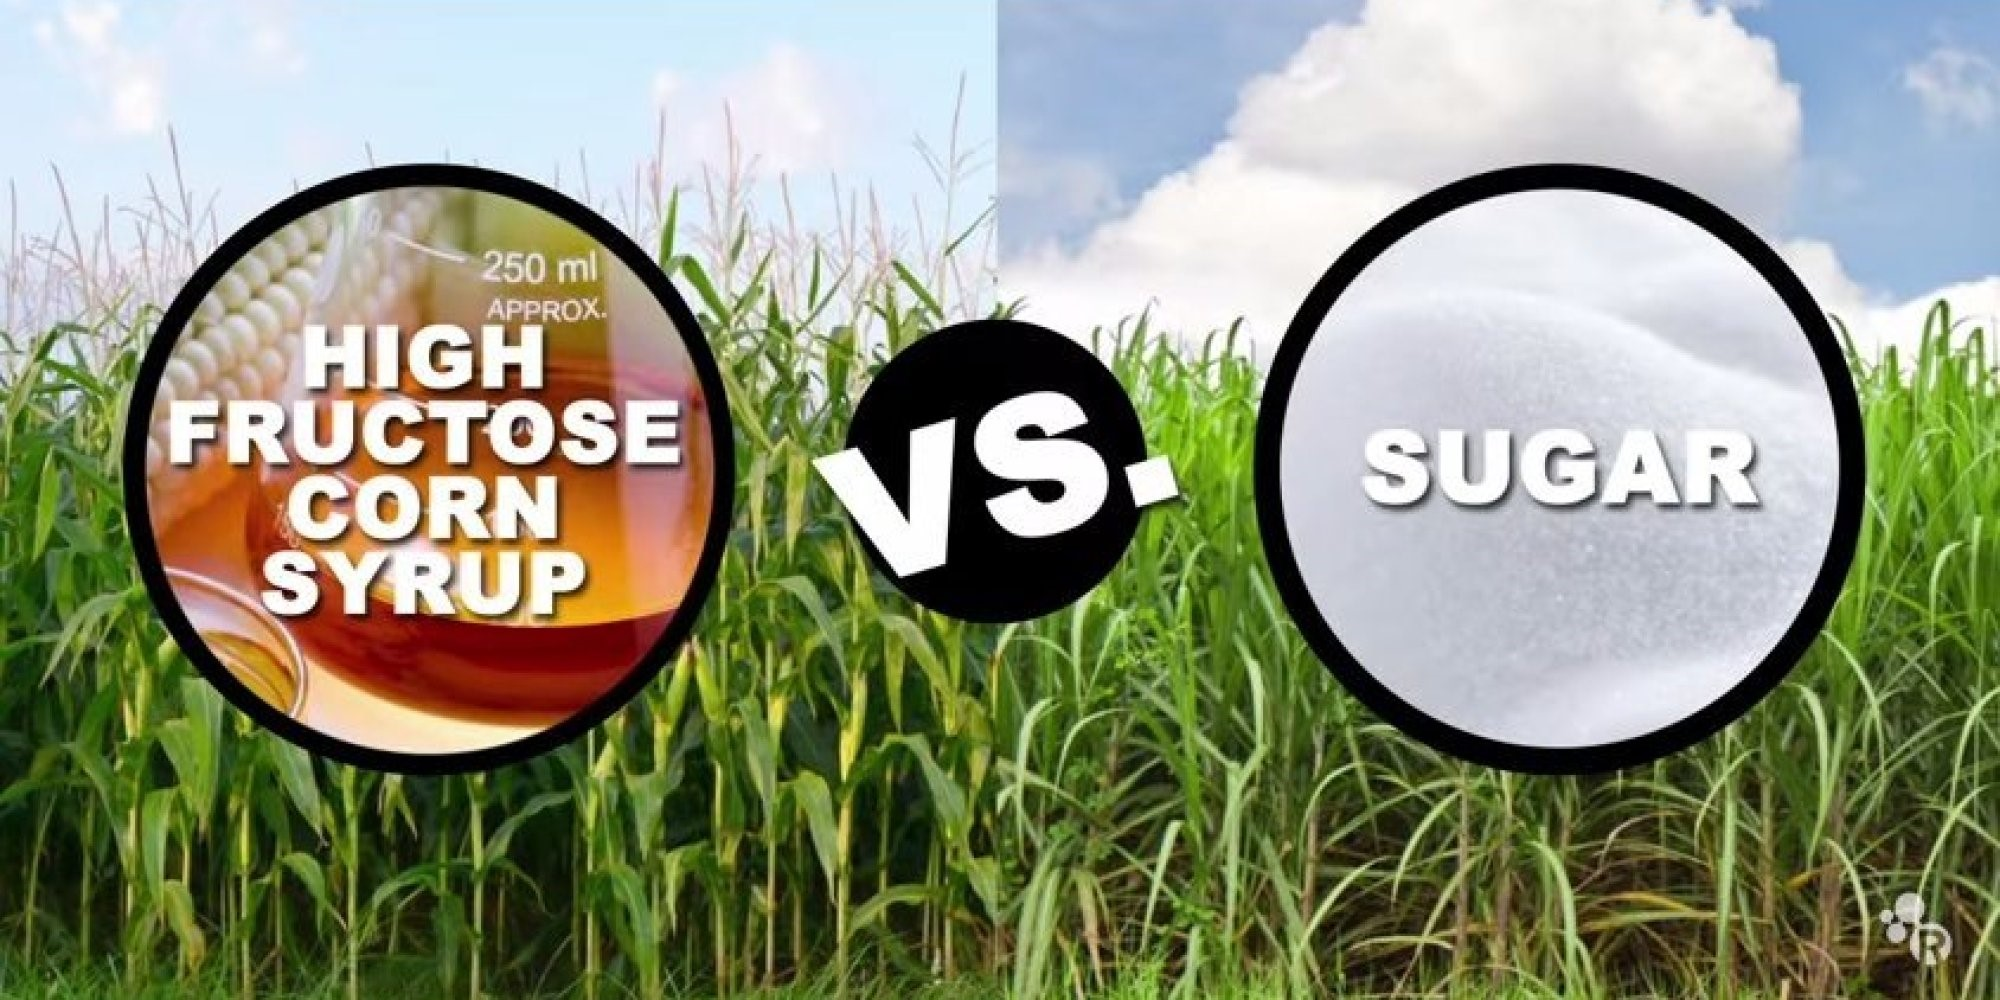 High Fructose Corn Syrup versus Sugar. Is one better or worse than the other? Here at Tognazzini, we're going to discuss the pros and cons of both as it relates to the food service industry.